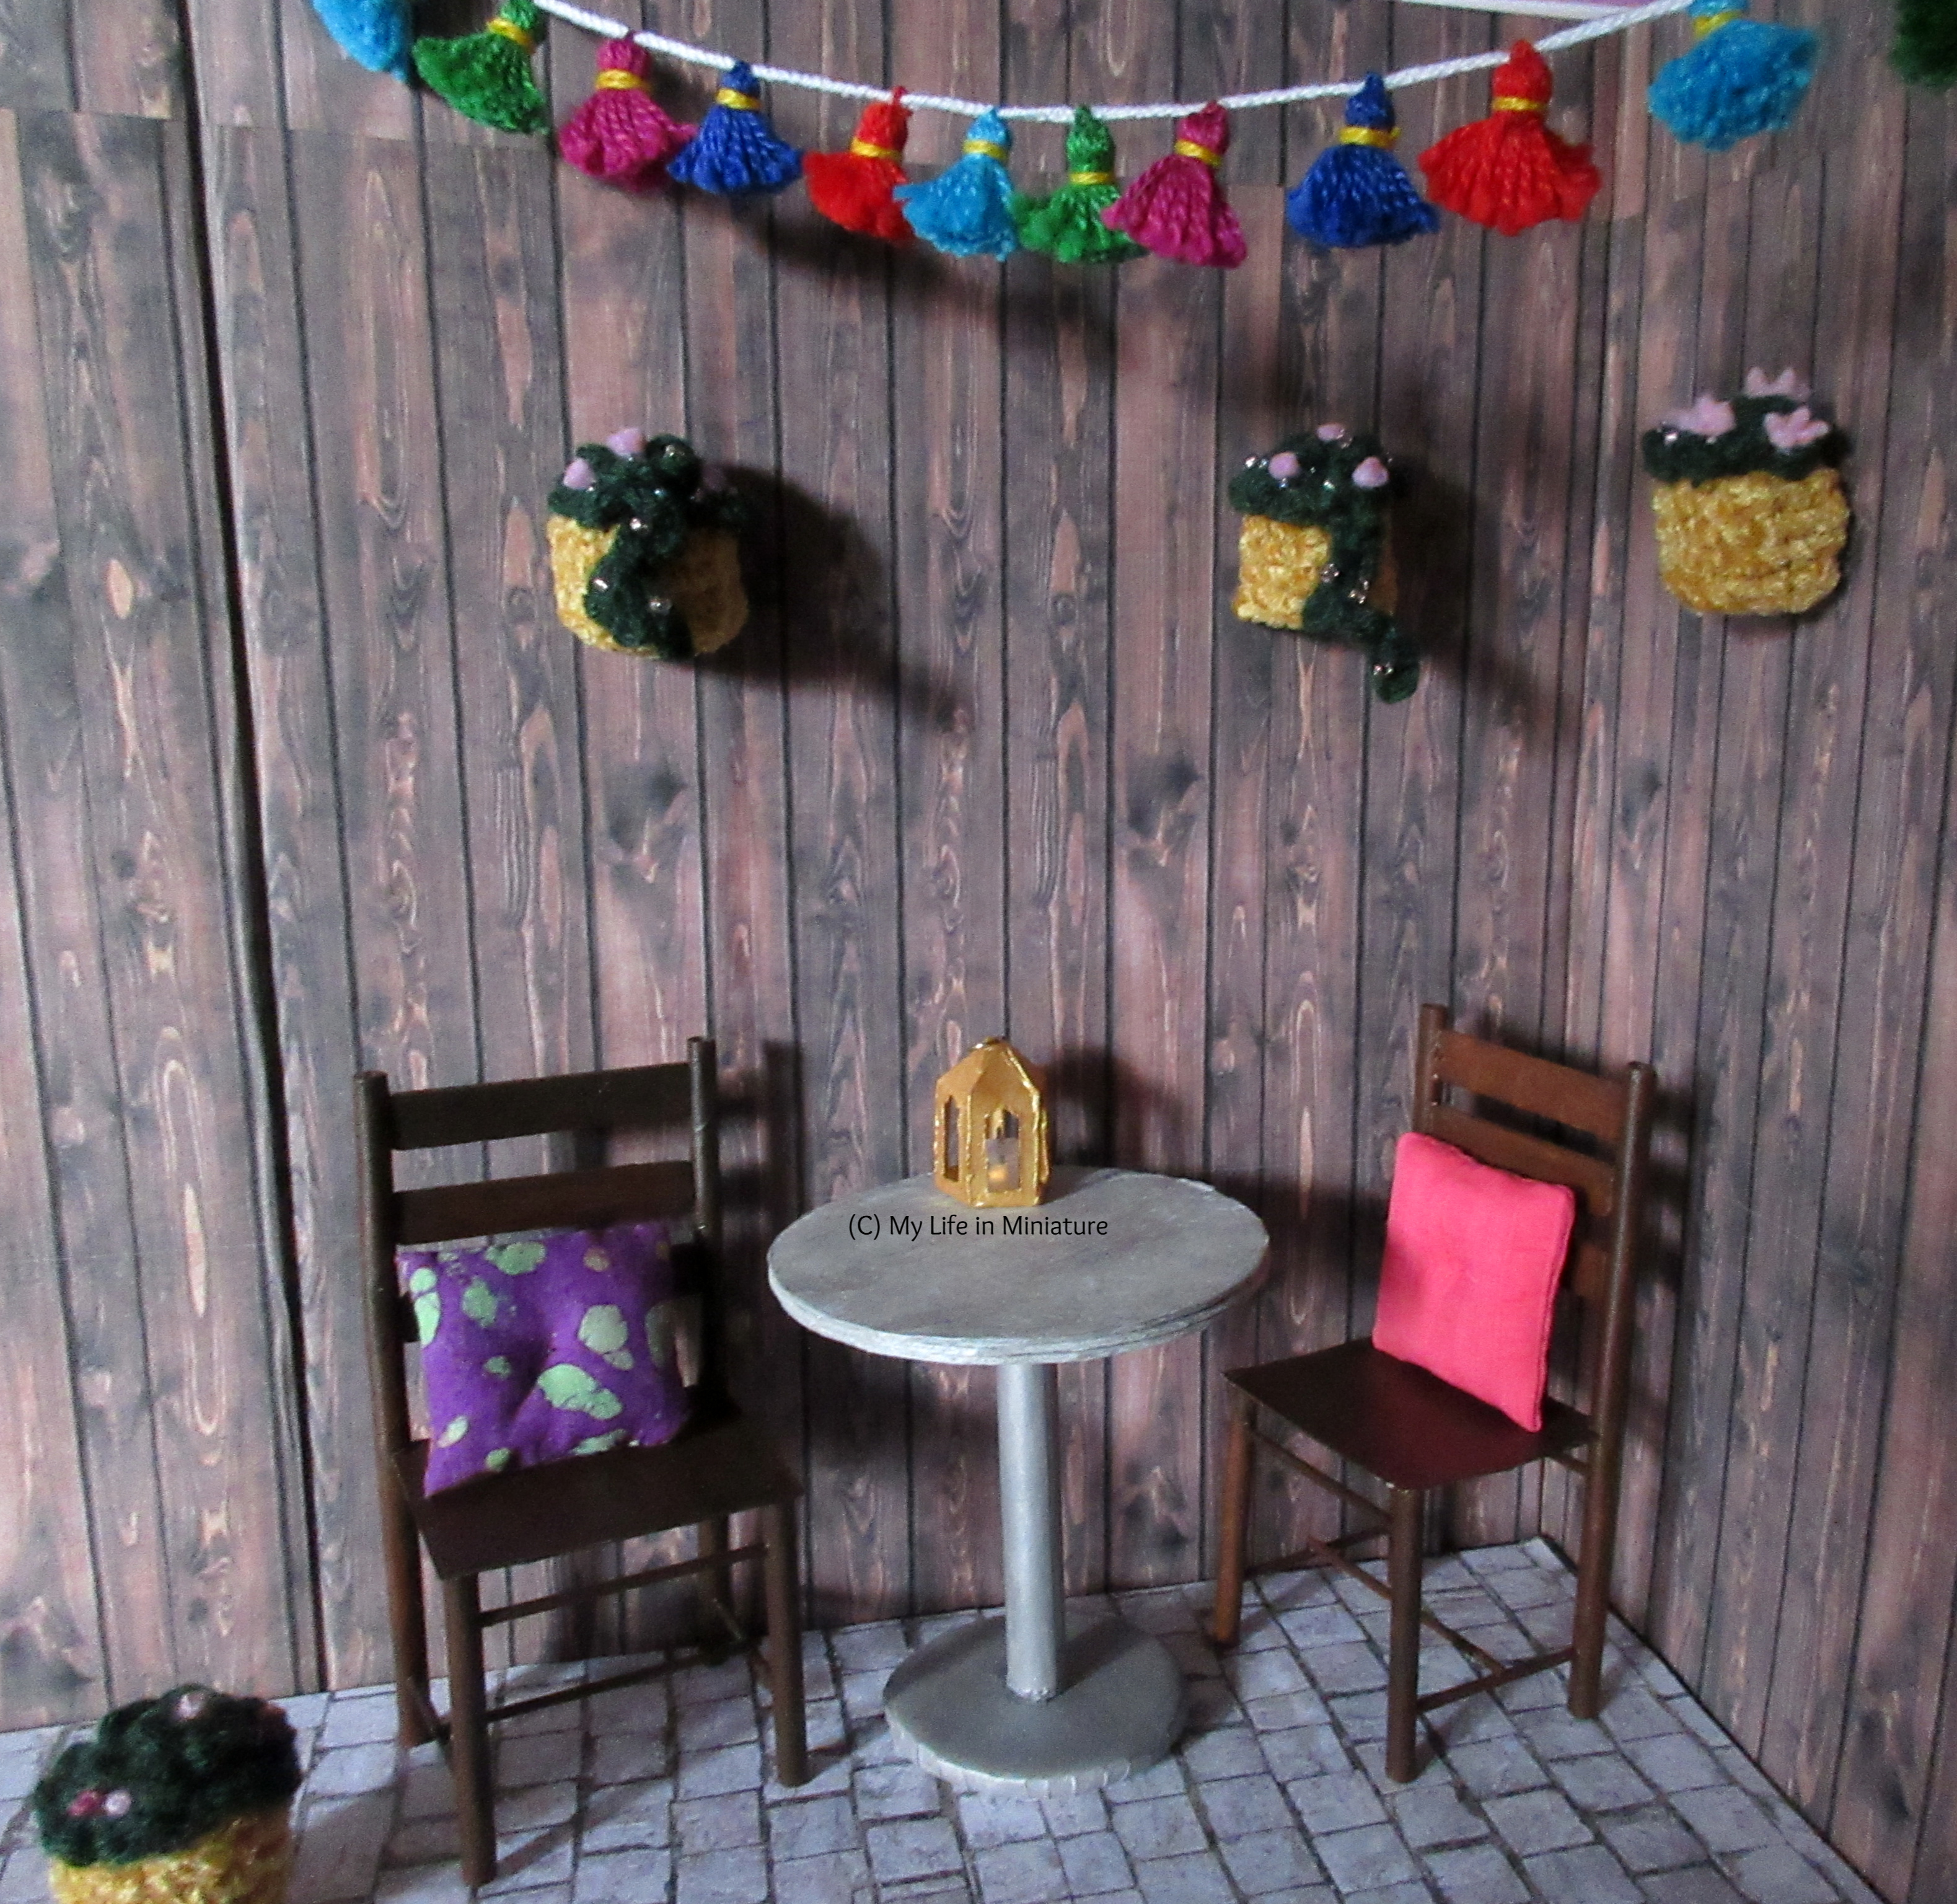 The Tea at Yaz's courtyard is shown, with the addition of three crocheted hanging baskets attached to the walls. The baskets hang above the table and chairs, and below the tassel garland.